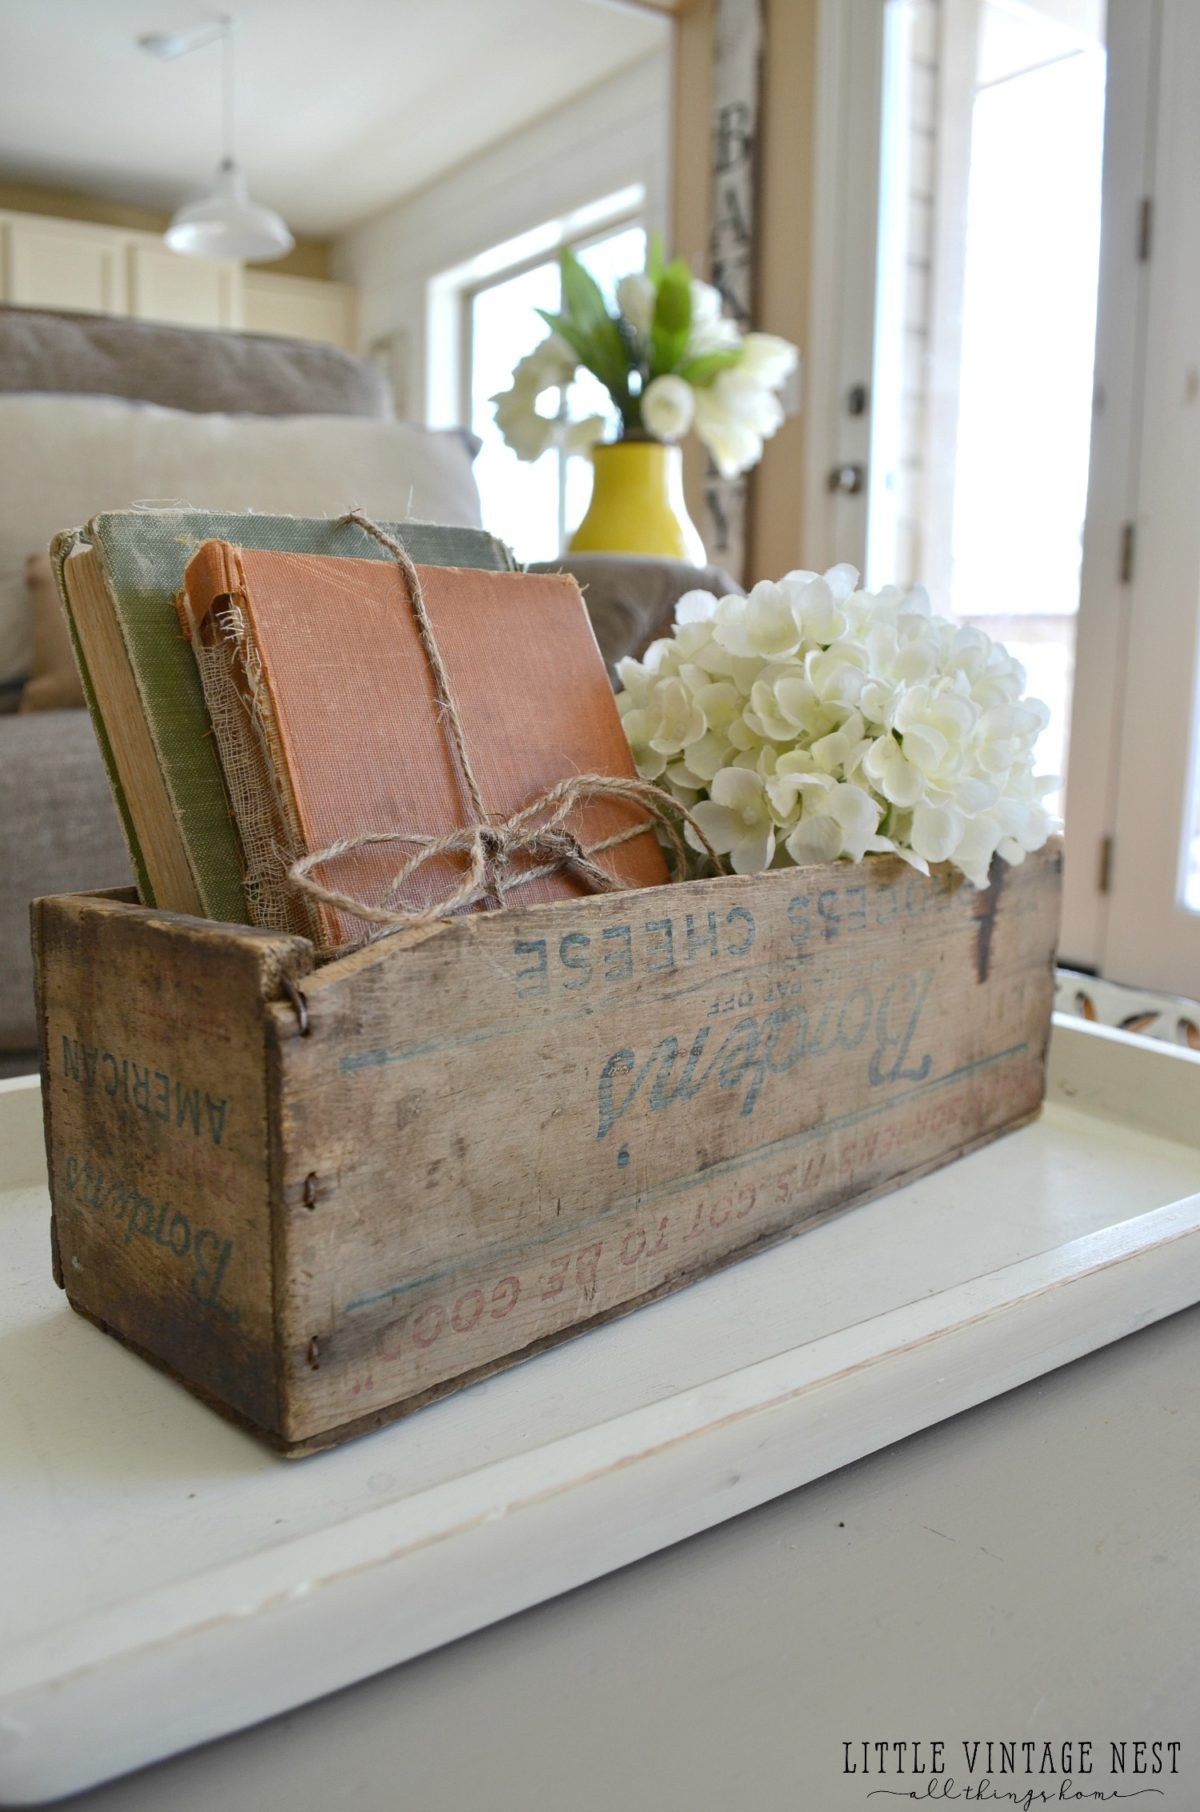 How to decorate with vintage decor little vintage nest for What to do with old mailbox